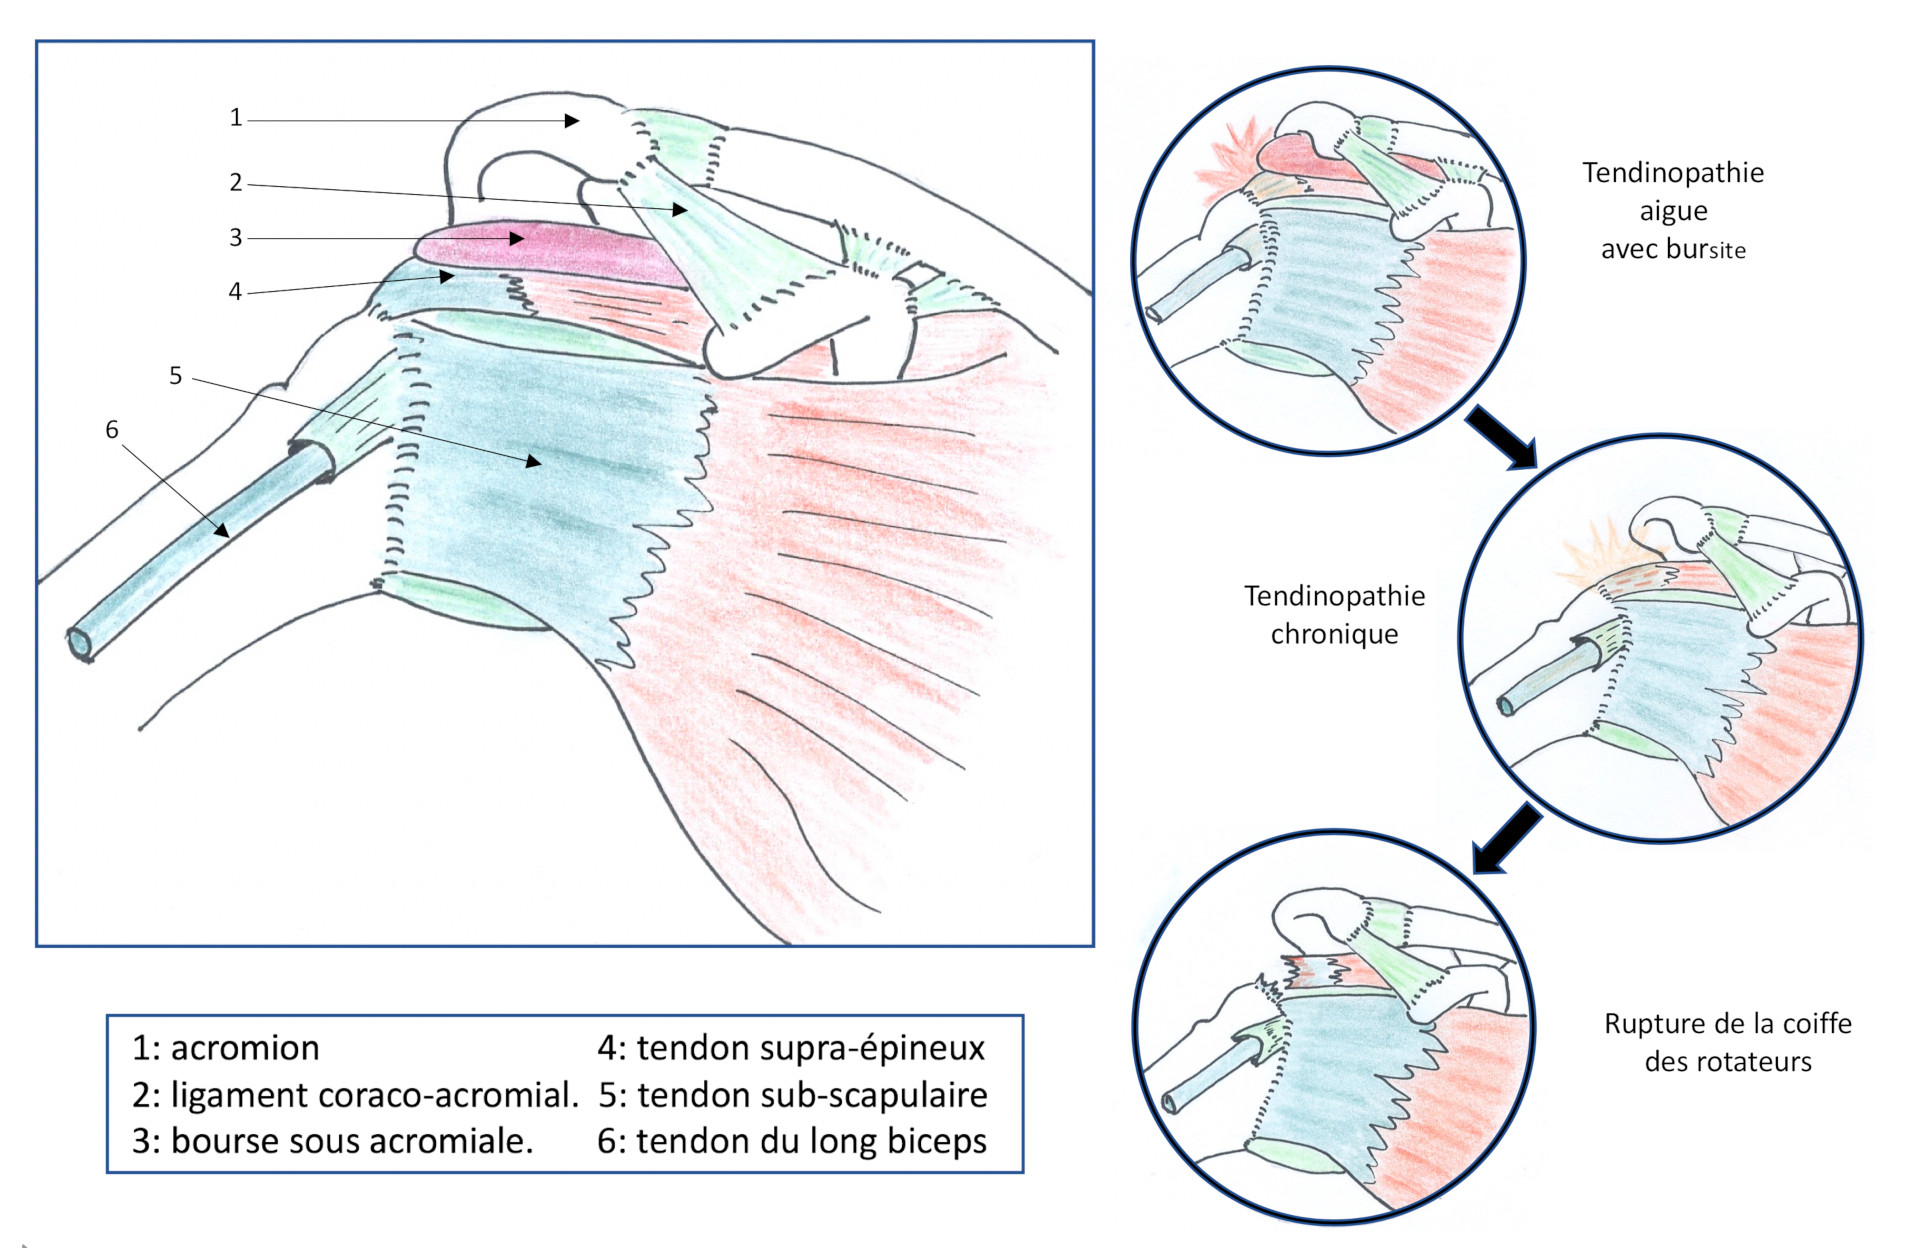 Evolution des tendinopathies